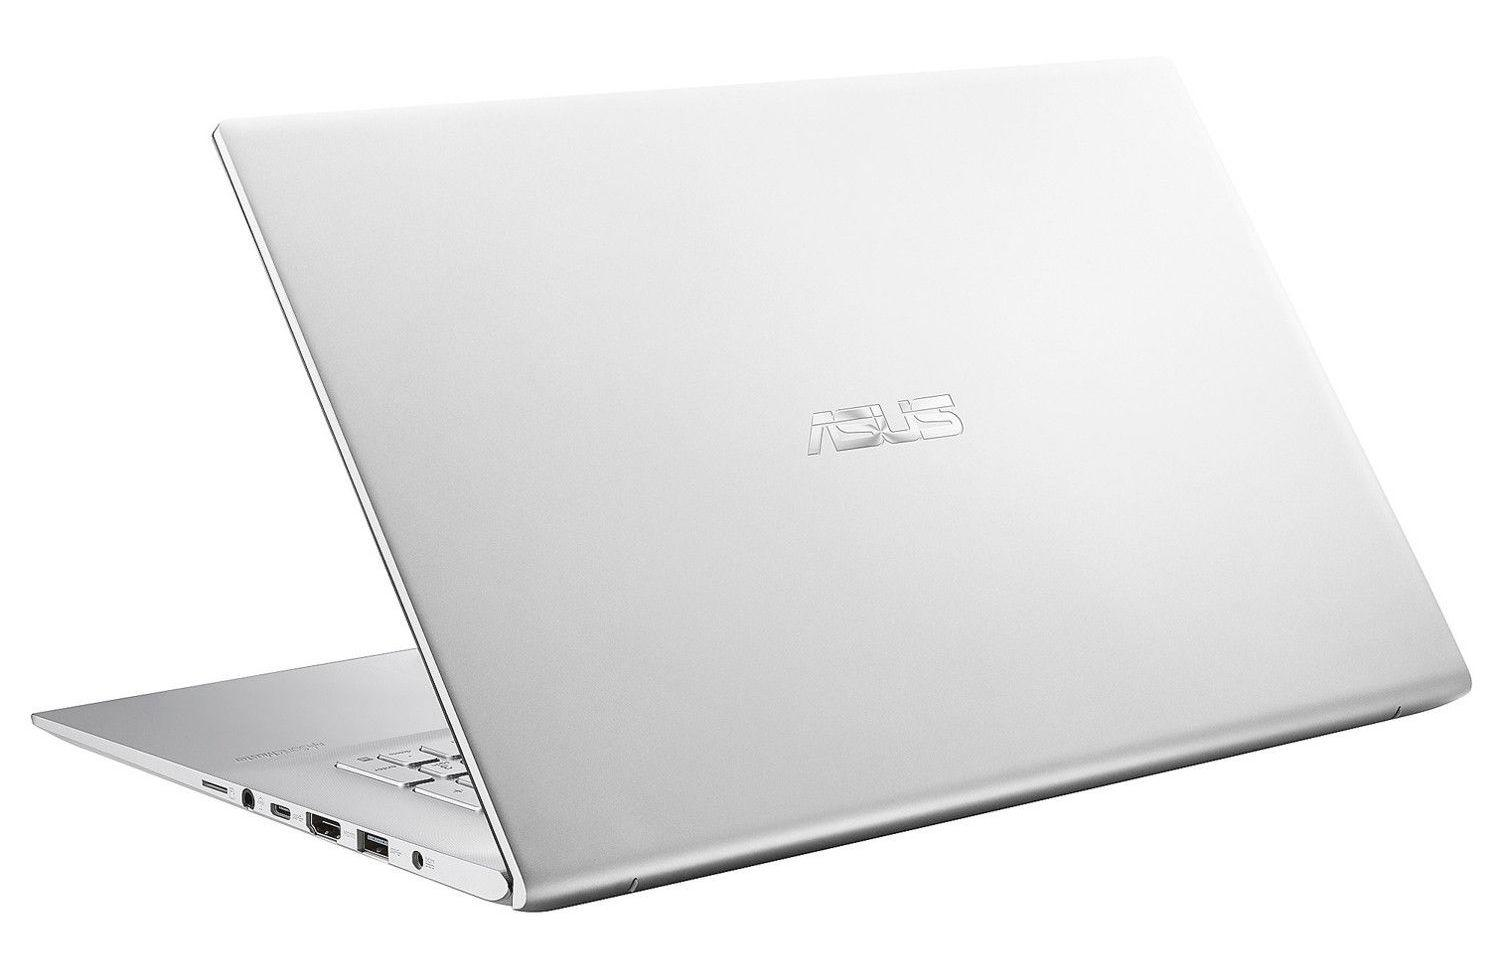 Ordinateur portable Asus VivoBook X712FB-AU121T Argent - SSD, MX110 - photo 4